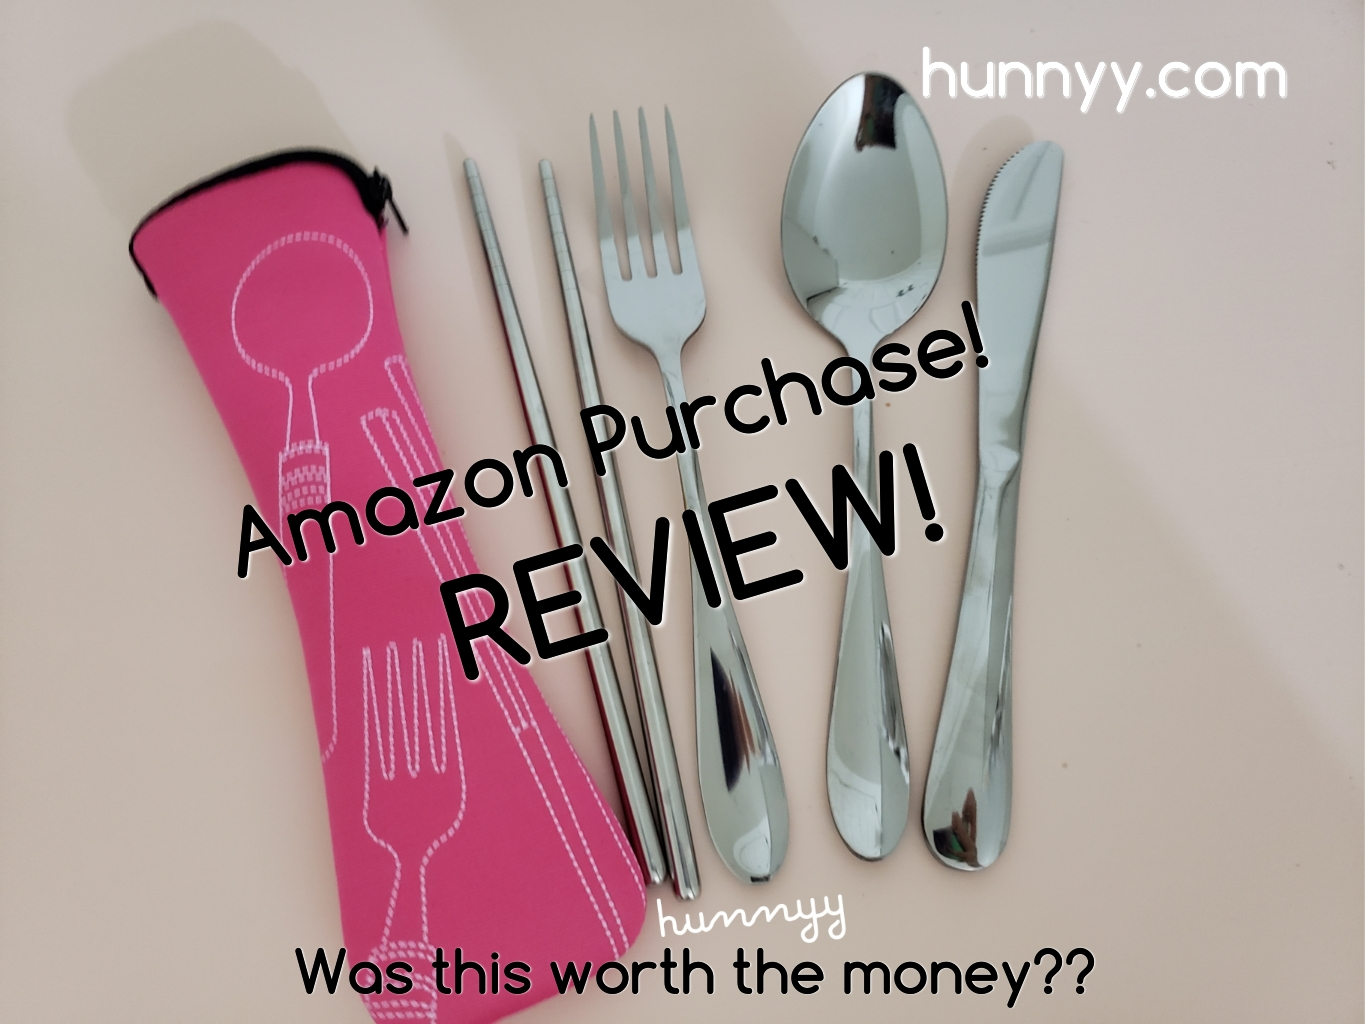 ::REVIEW:: Travel Utensils From Amazon!